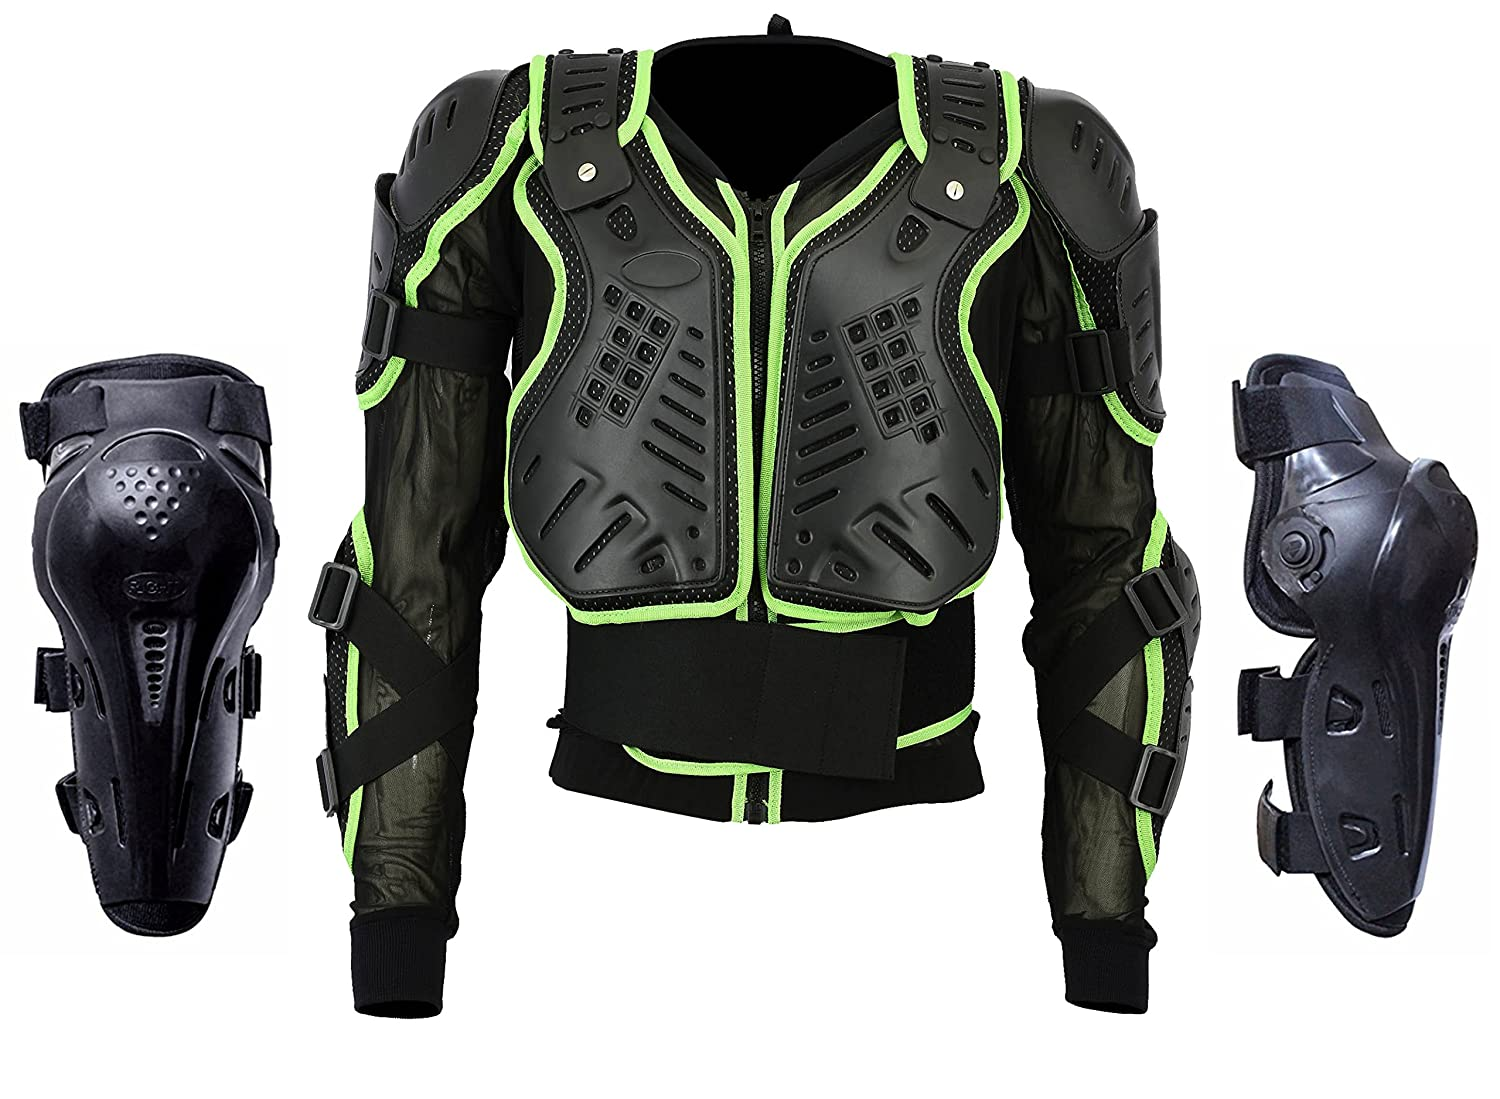 Motocross Motorbike Body Armour Motorcycle Protection Jacket Armoured Mountain Cycling Riding Skating Snowboarding Track Crash Guard CE Approved Green